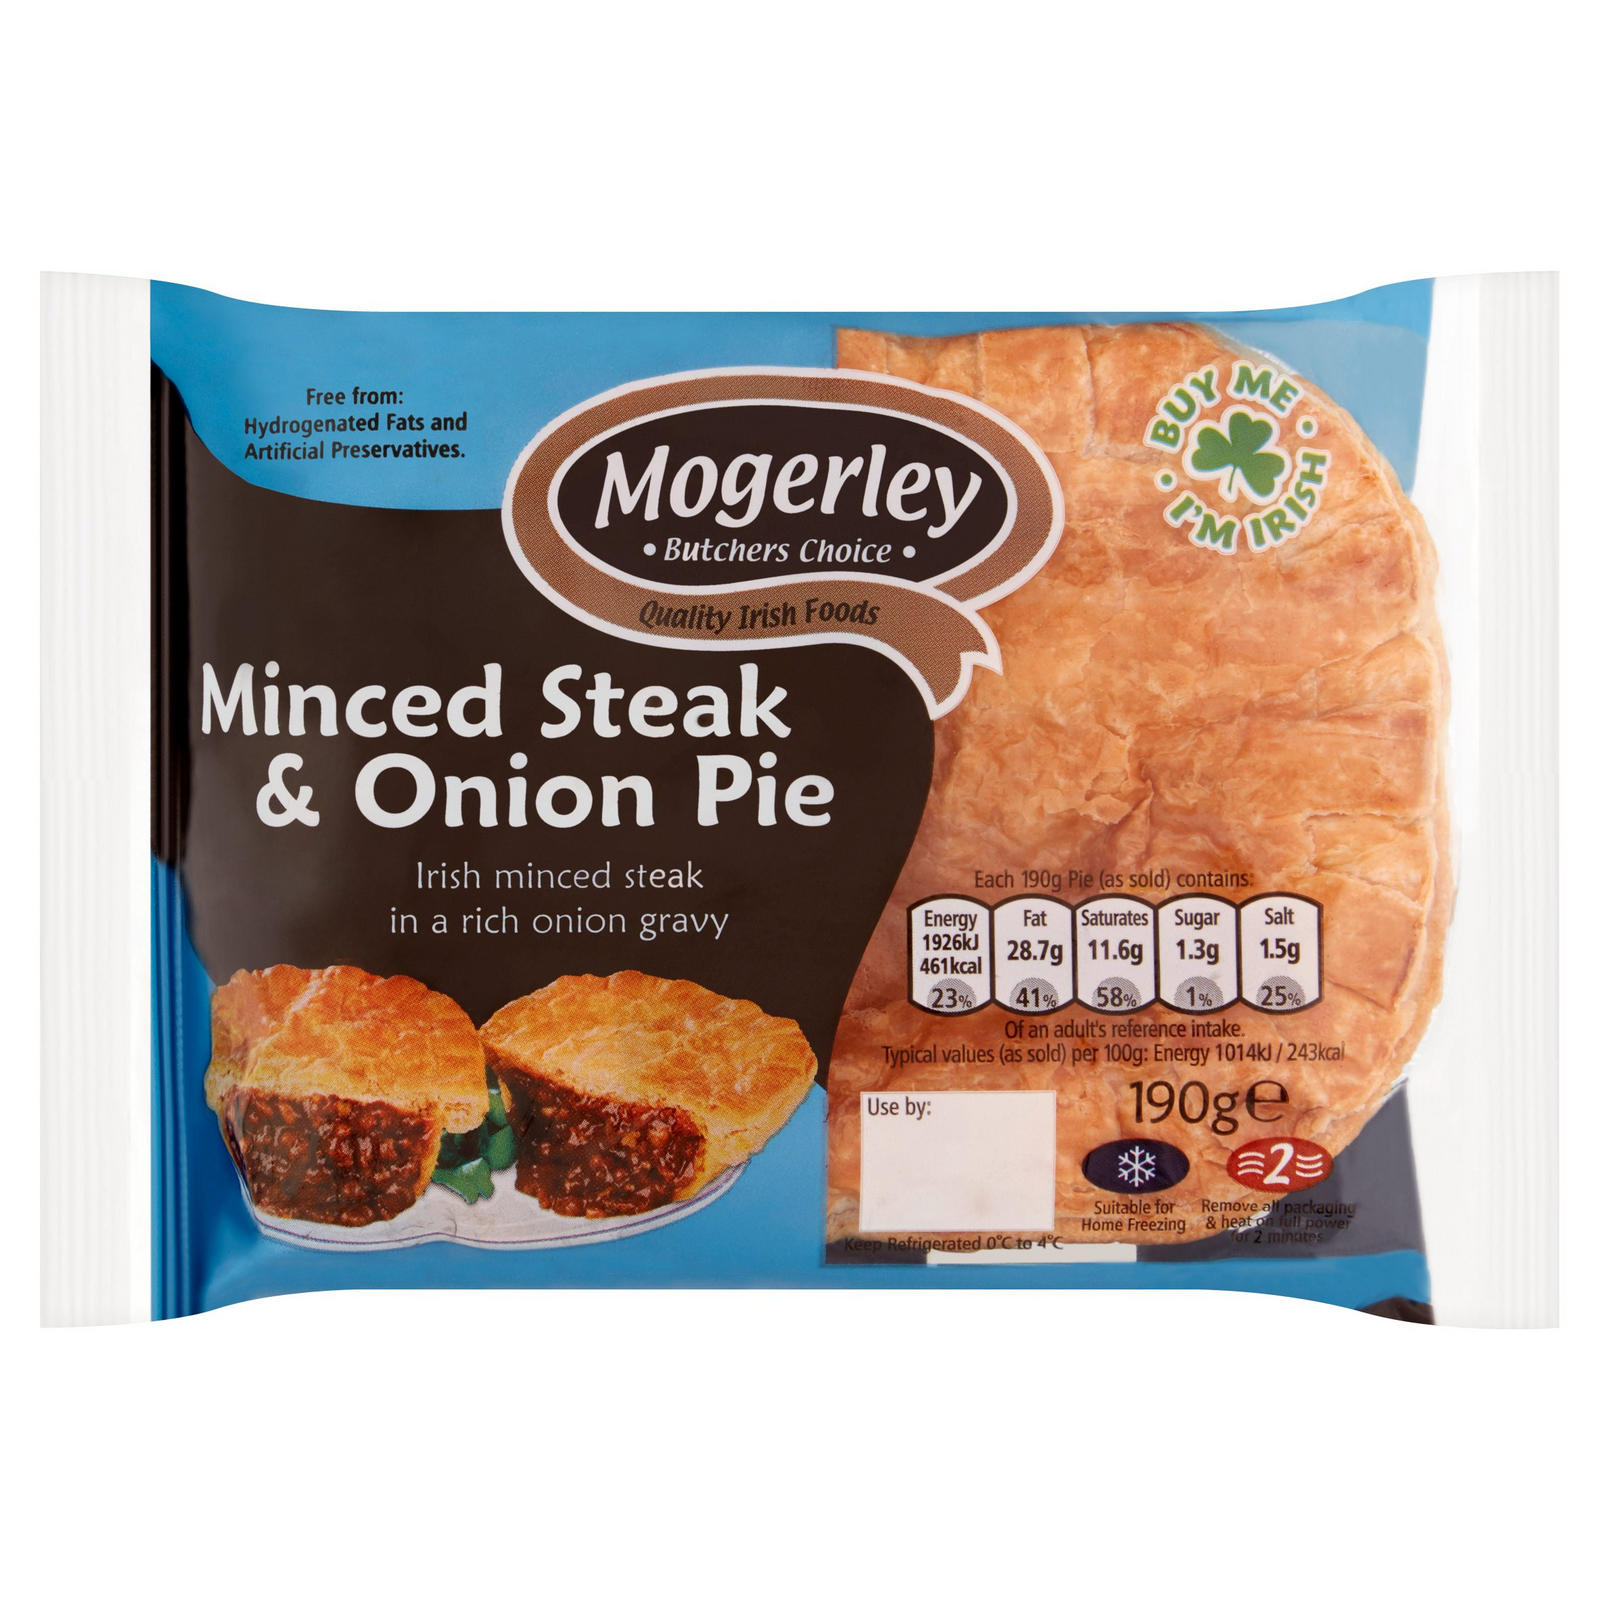 Mogerley Butchers Choice Minced Steak & Onion Pie 190g ...